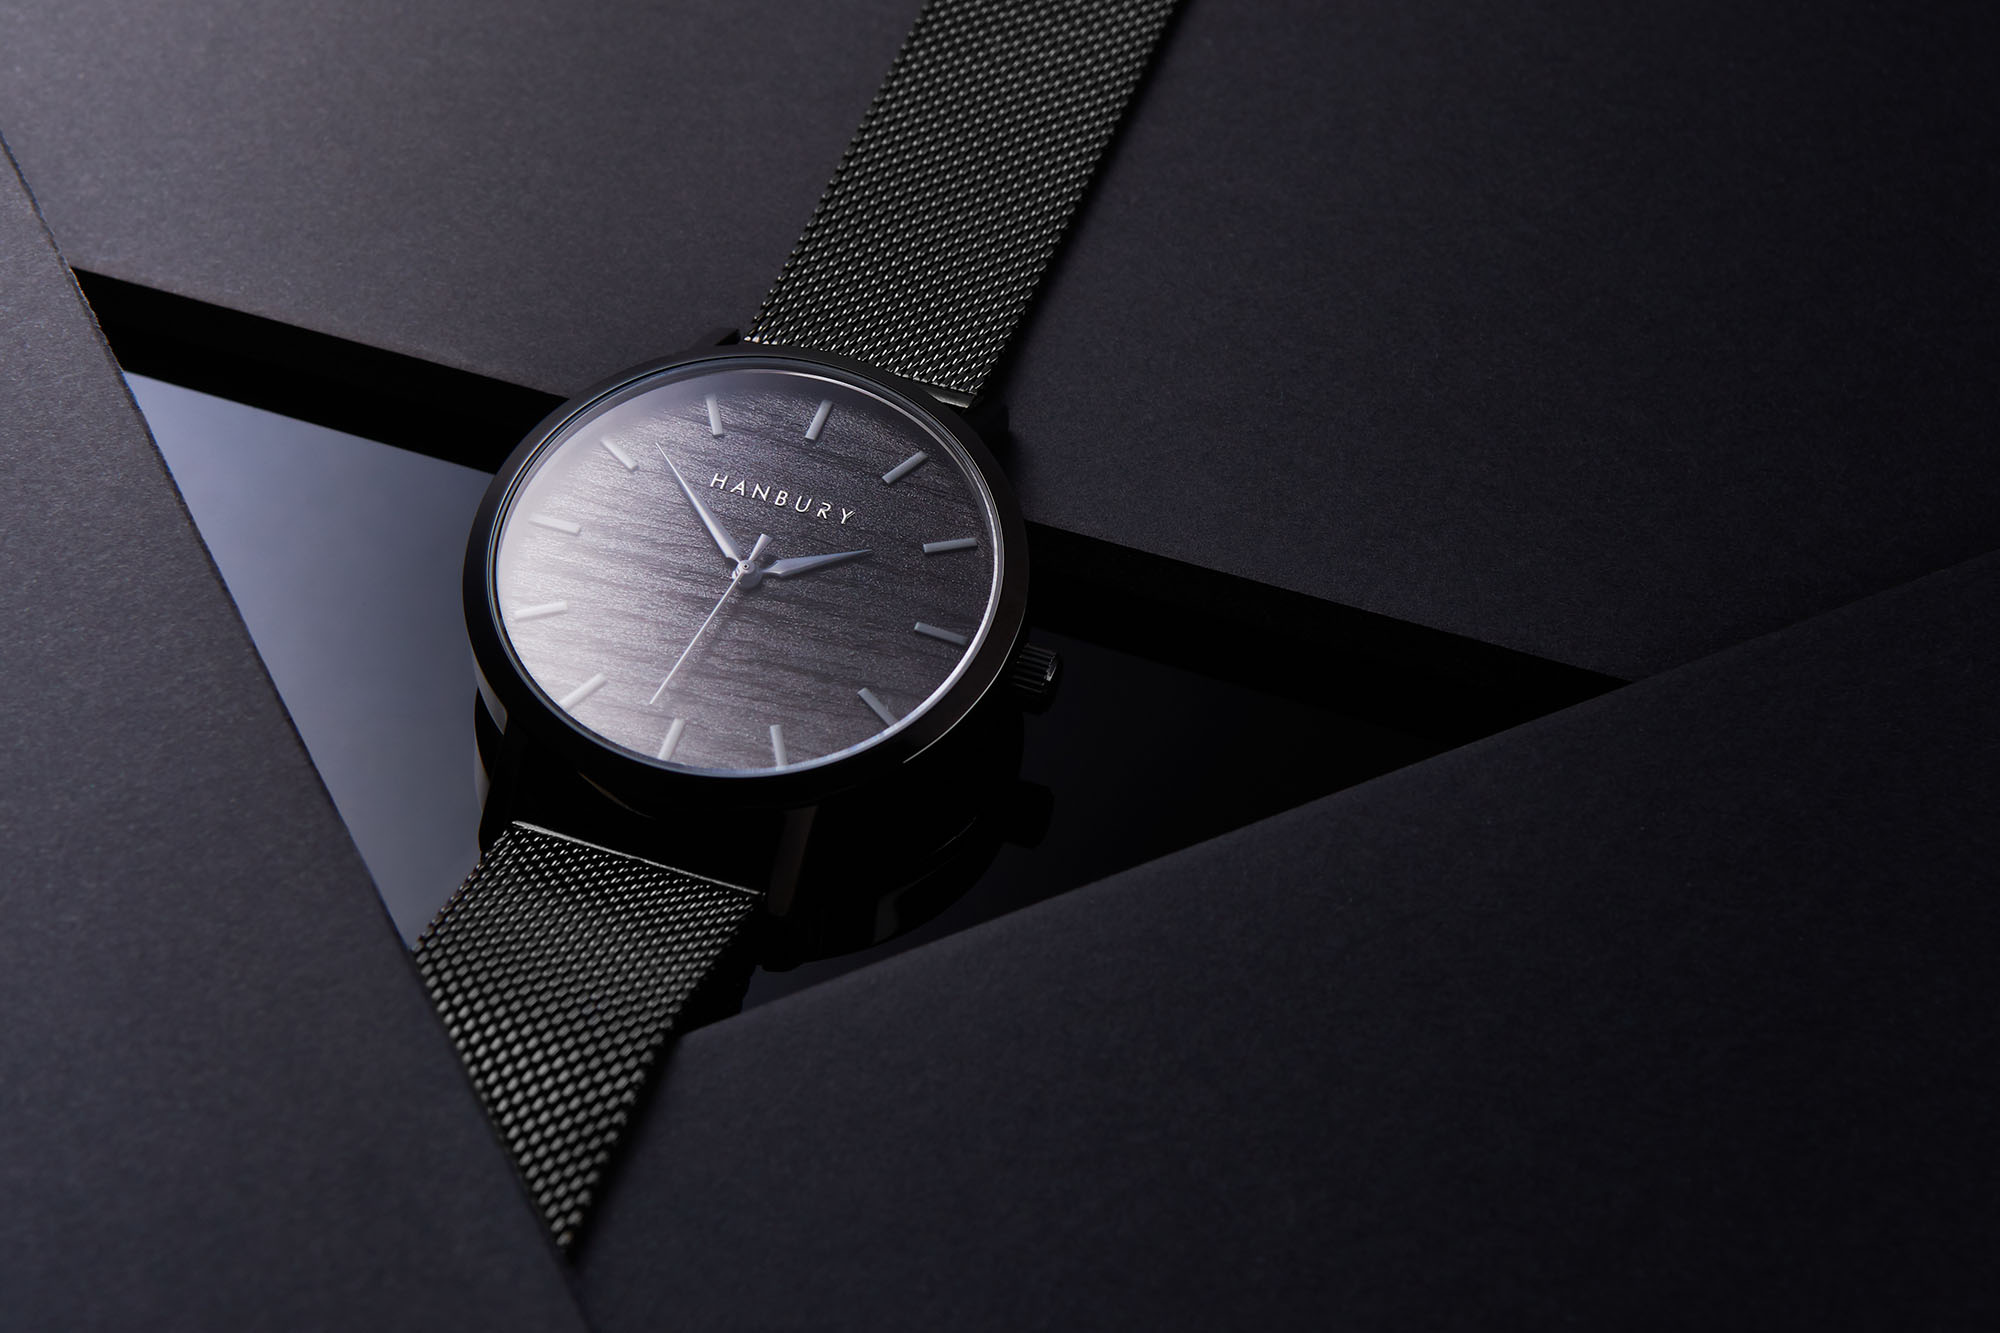 Ian Knaggs Commercial Watch Photographer - Hanbury Watch in Black Triangle